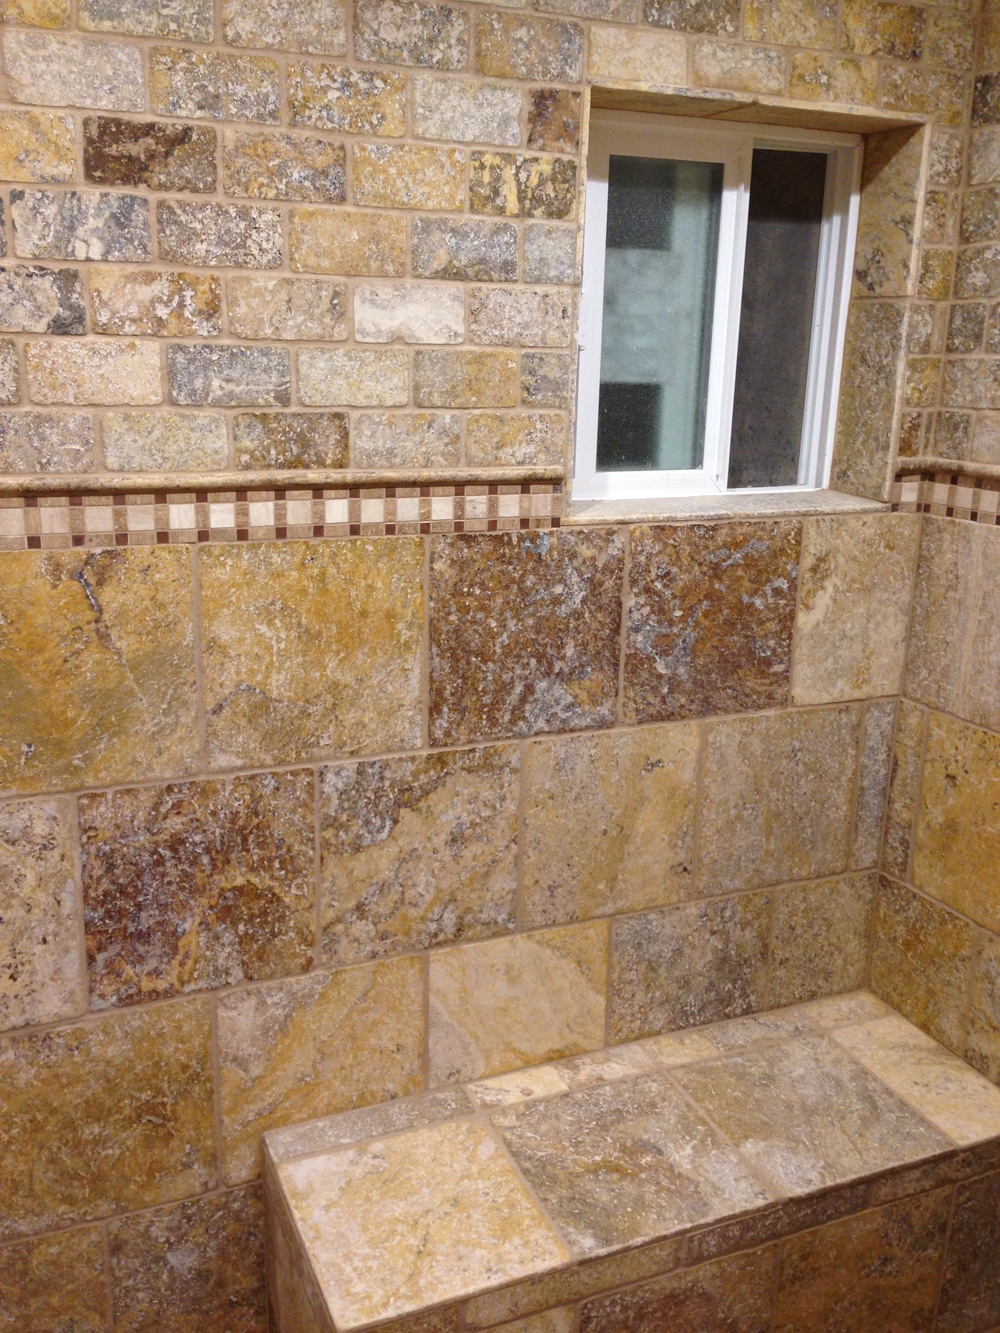 Naturalstone travertinetiles scabos tile encounters for Best grout color for travertine tile